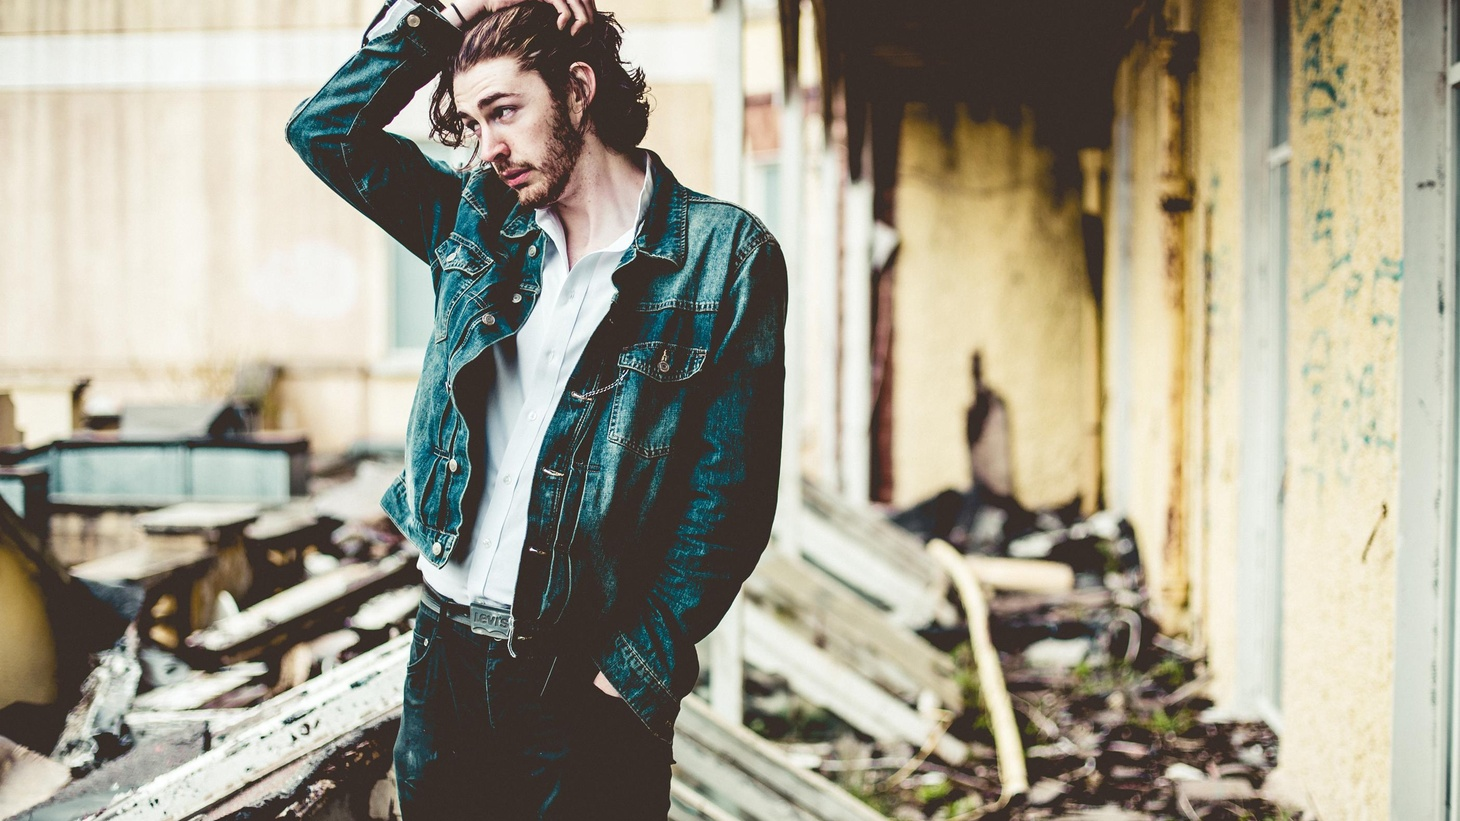 Hailing from Ireland and born on St Patrick's Day, Hozier delves into modern blues and forges his own sound.